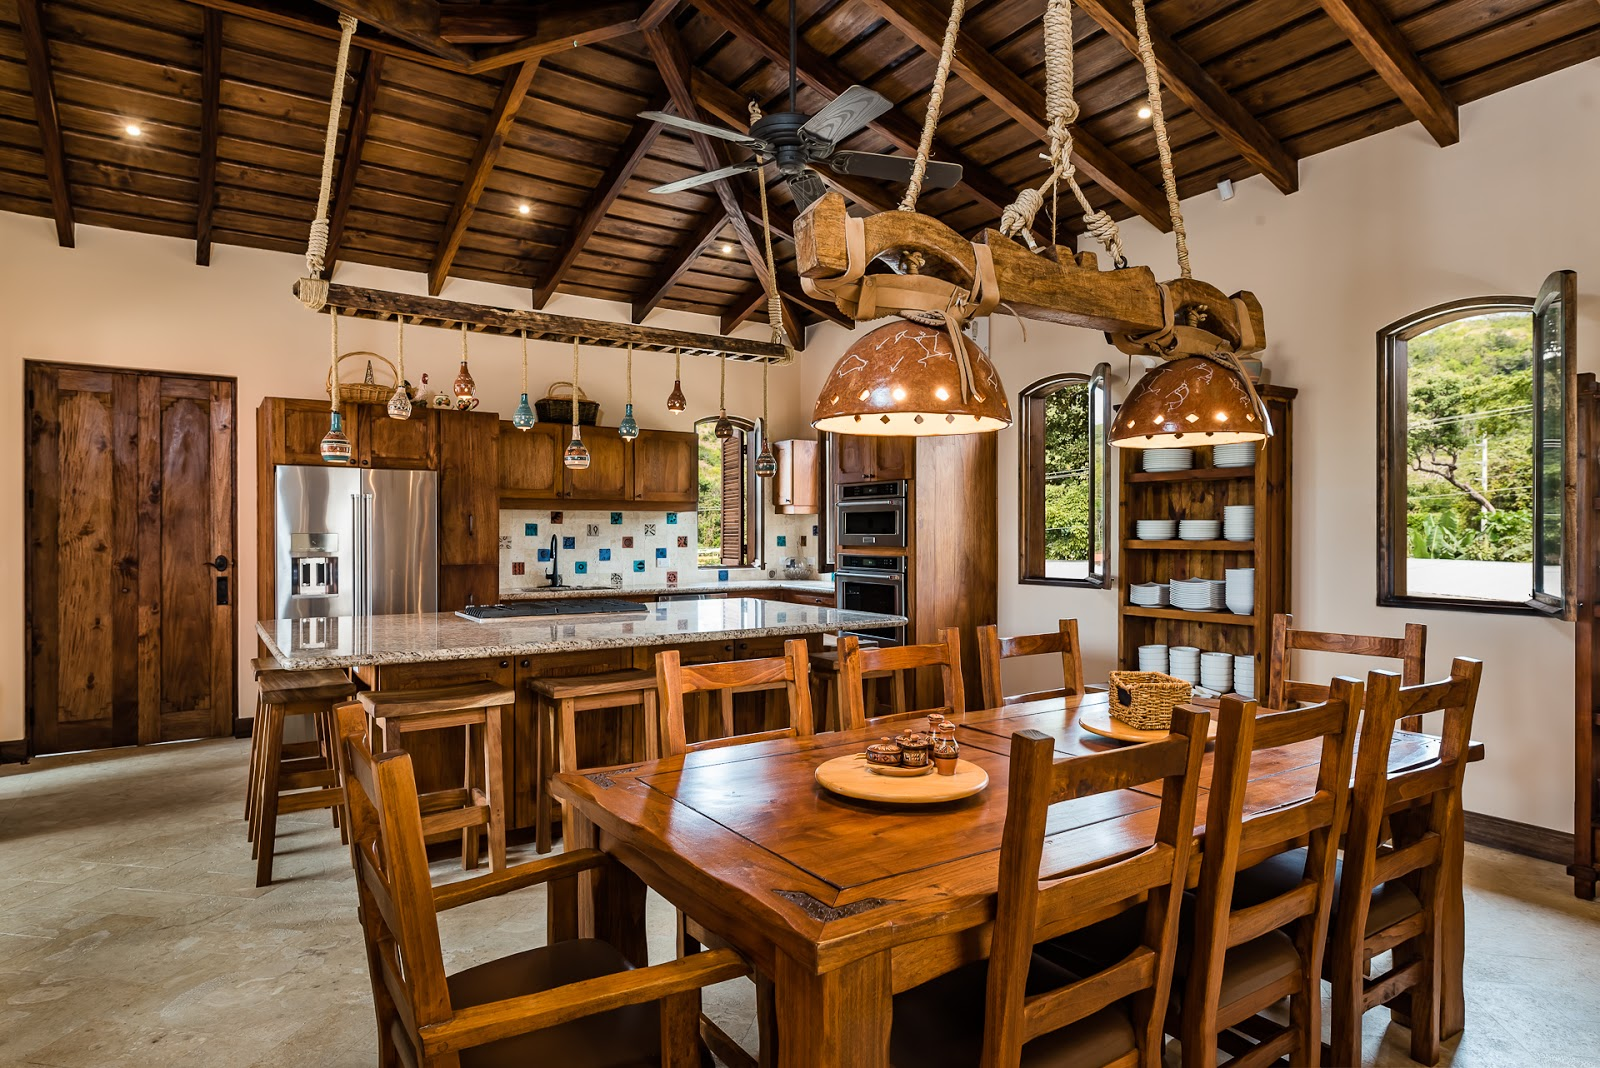 Casa Maya's in-home dining for up to 18 is ideal for hosting pre-race dinners to keep the whole team in peak condition.